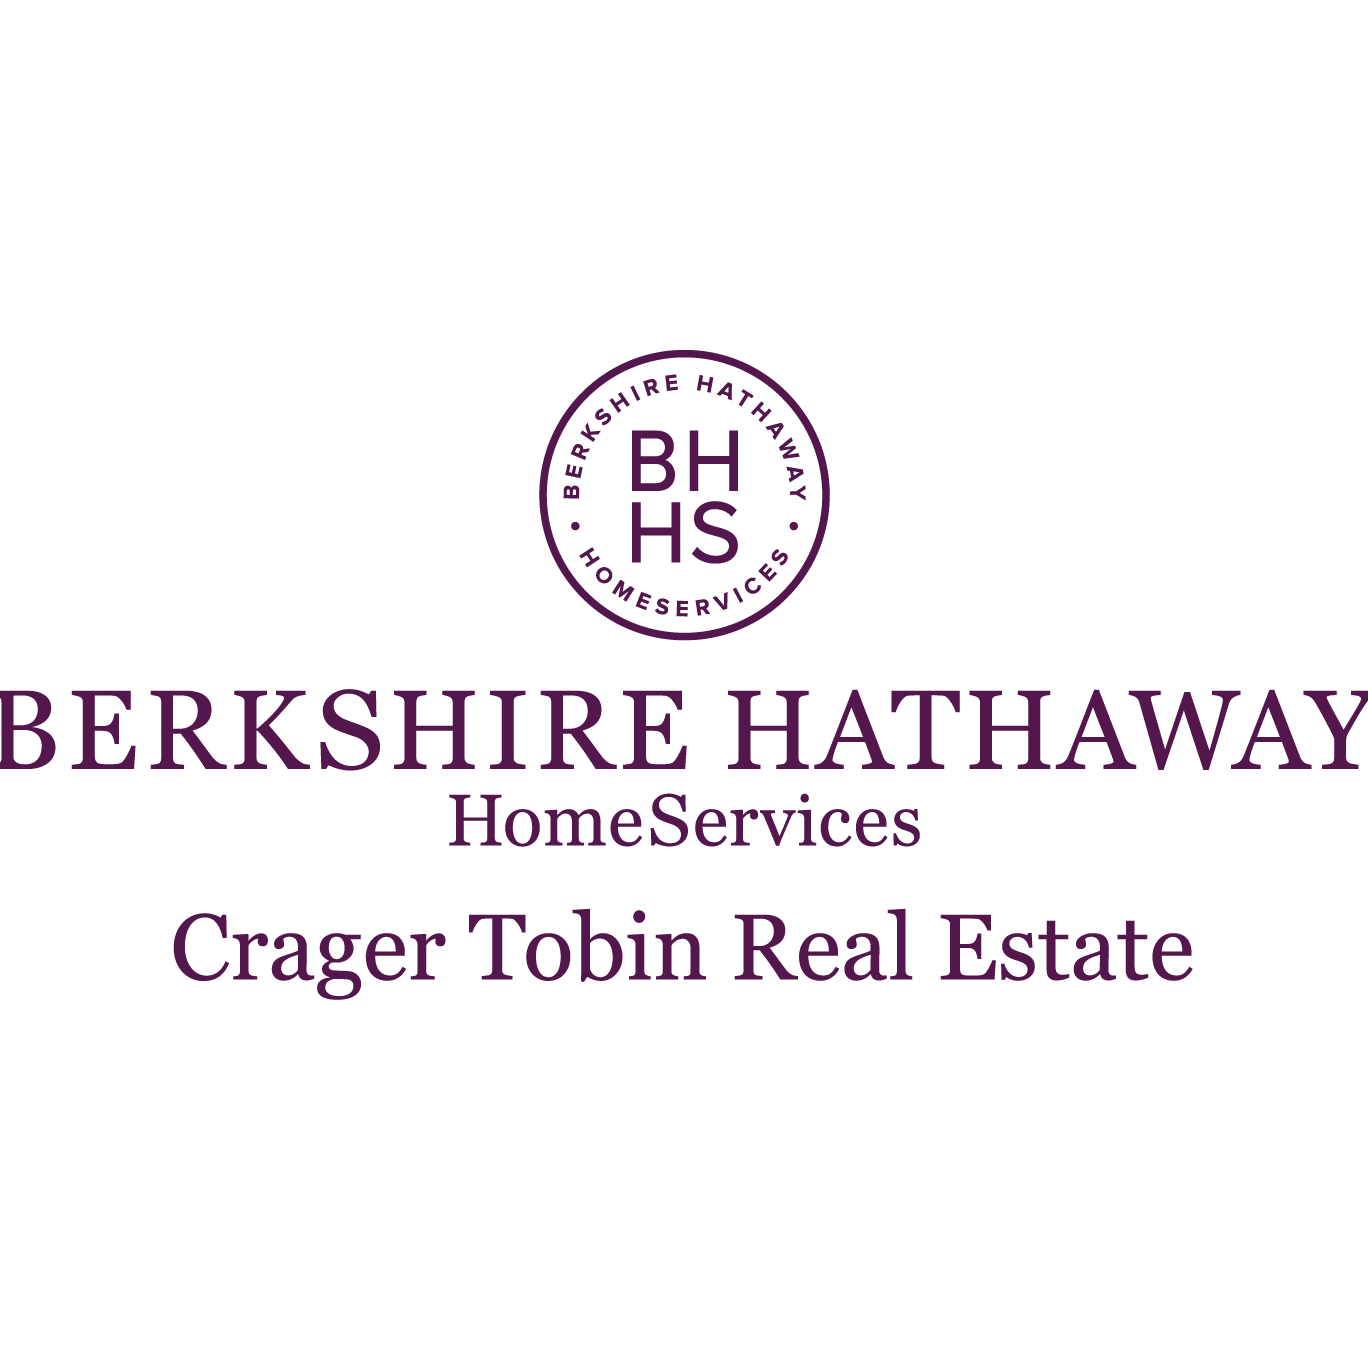 Berkshire Hathaway HomeServices Crager Tobin Real Estate